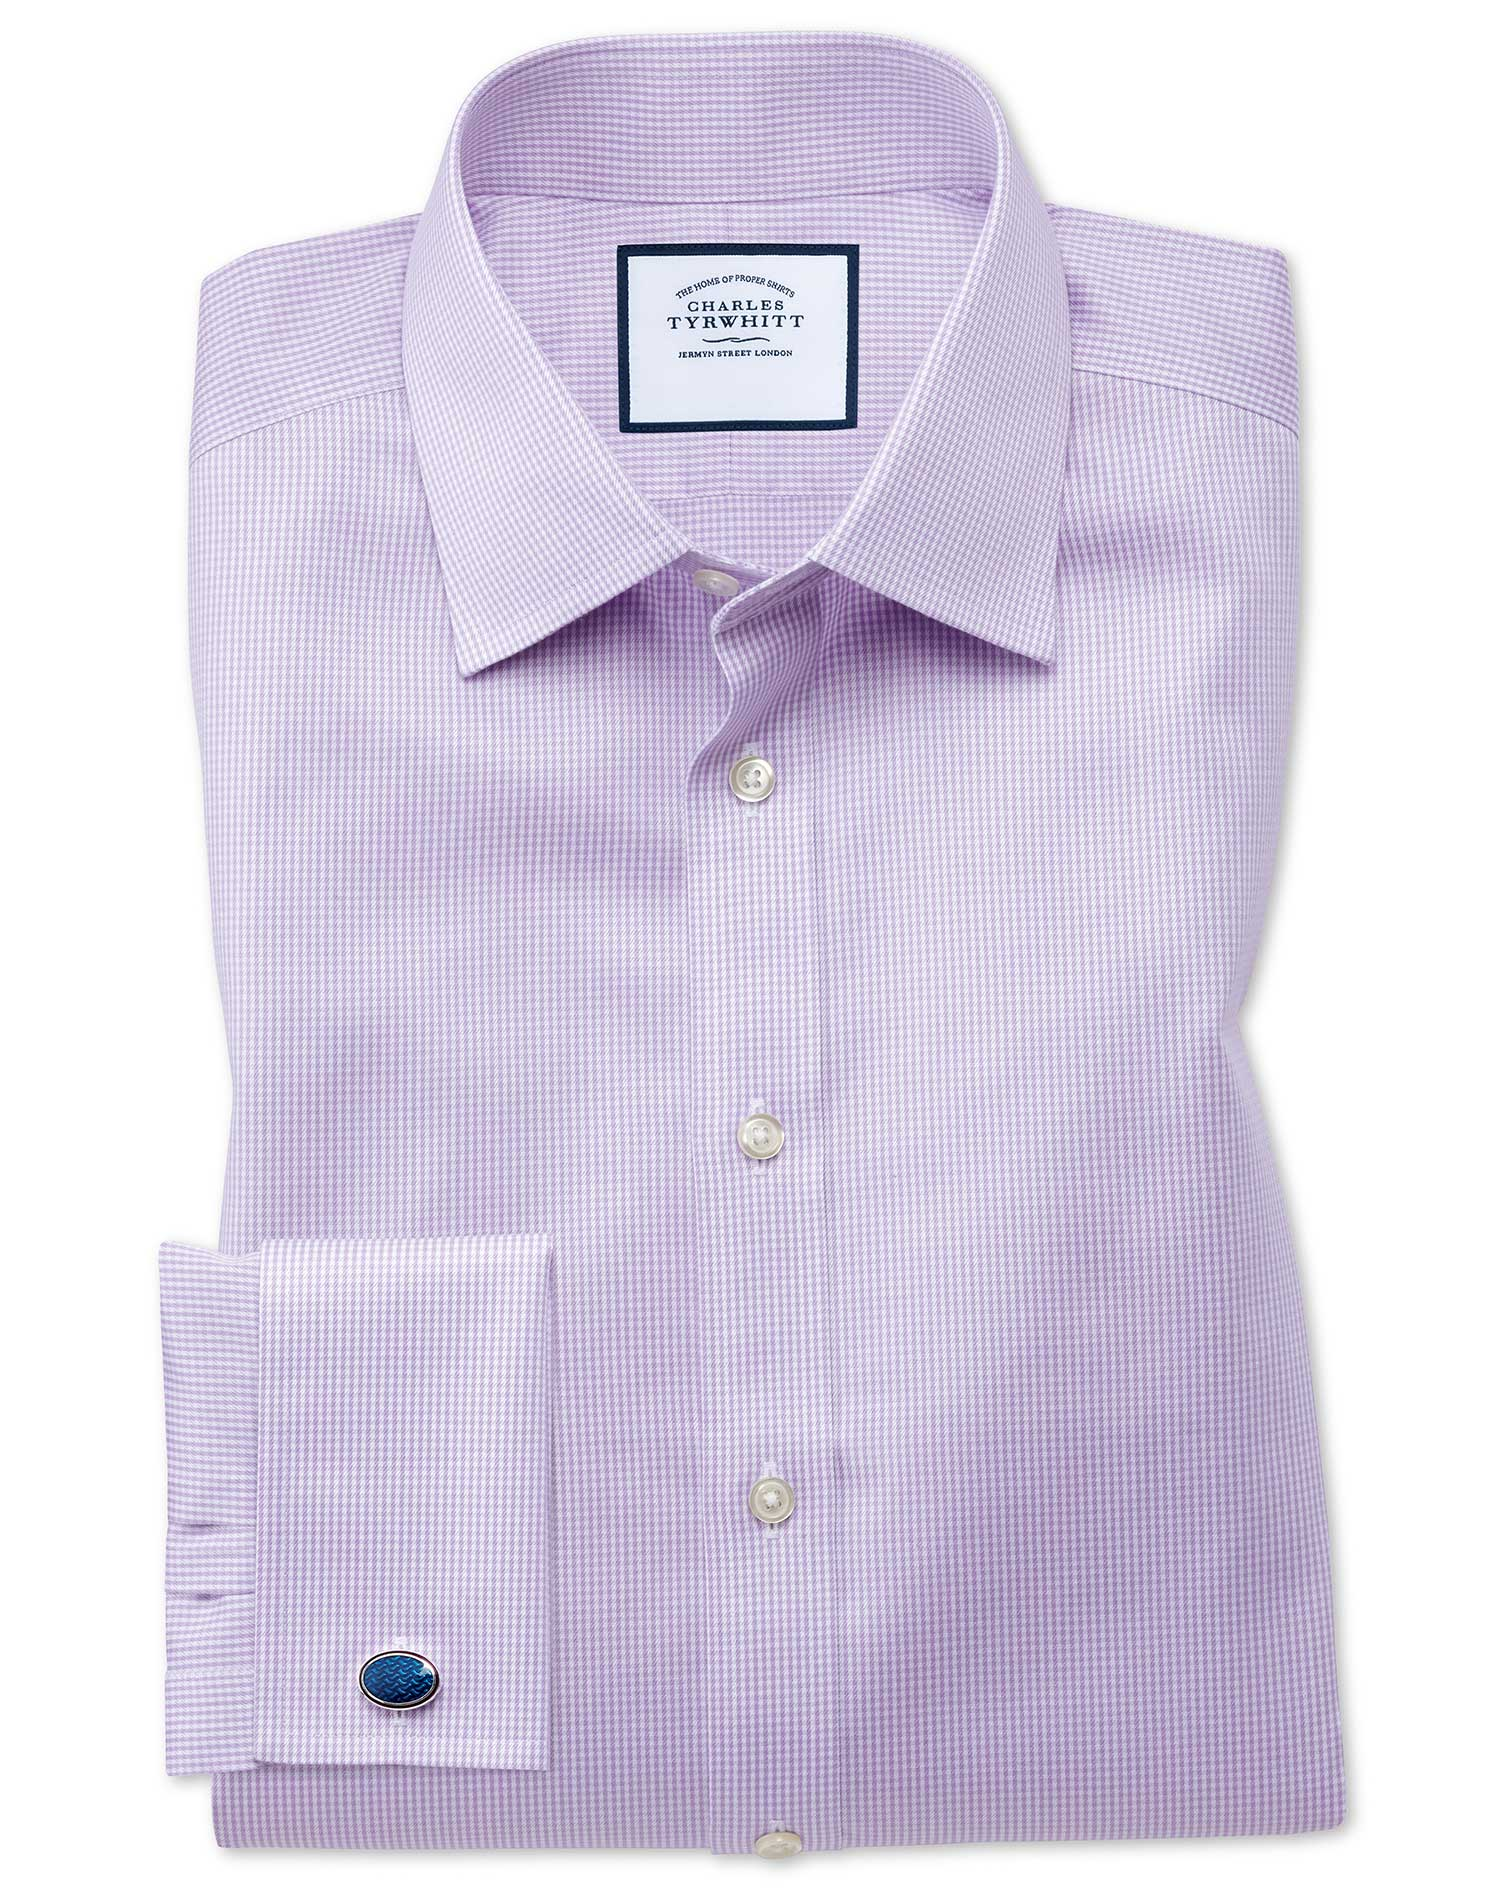 Slim Fit Non-Iron Puppytooth Lilac Cotton Formal Shirt Double Cuff Size 16/33 by Charles Tyrwhitt